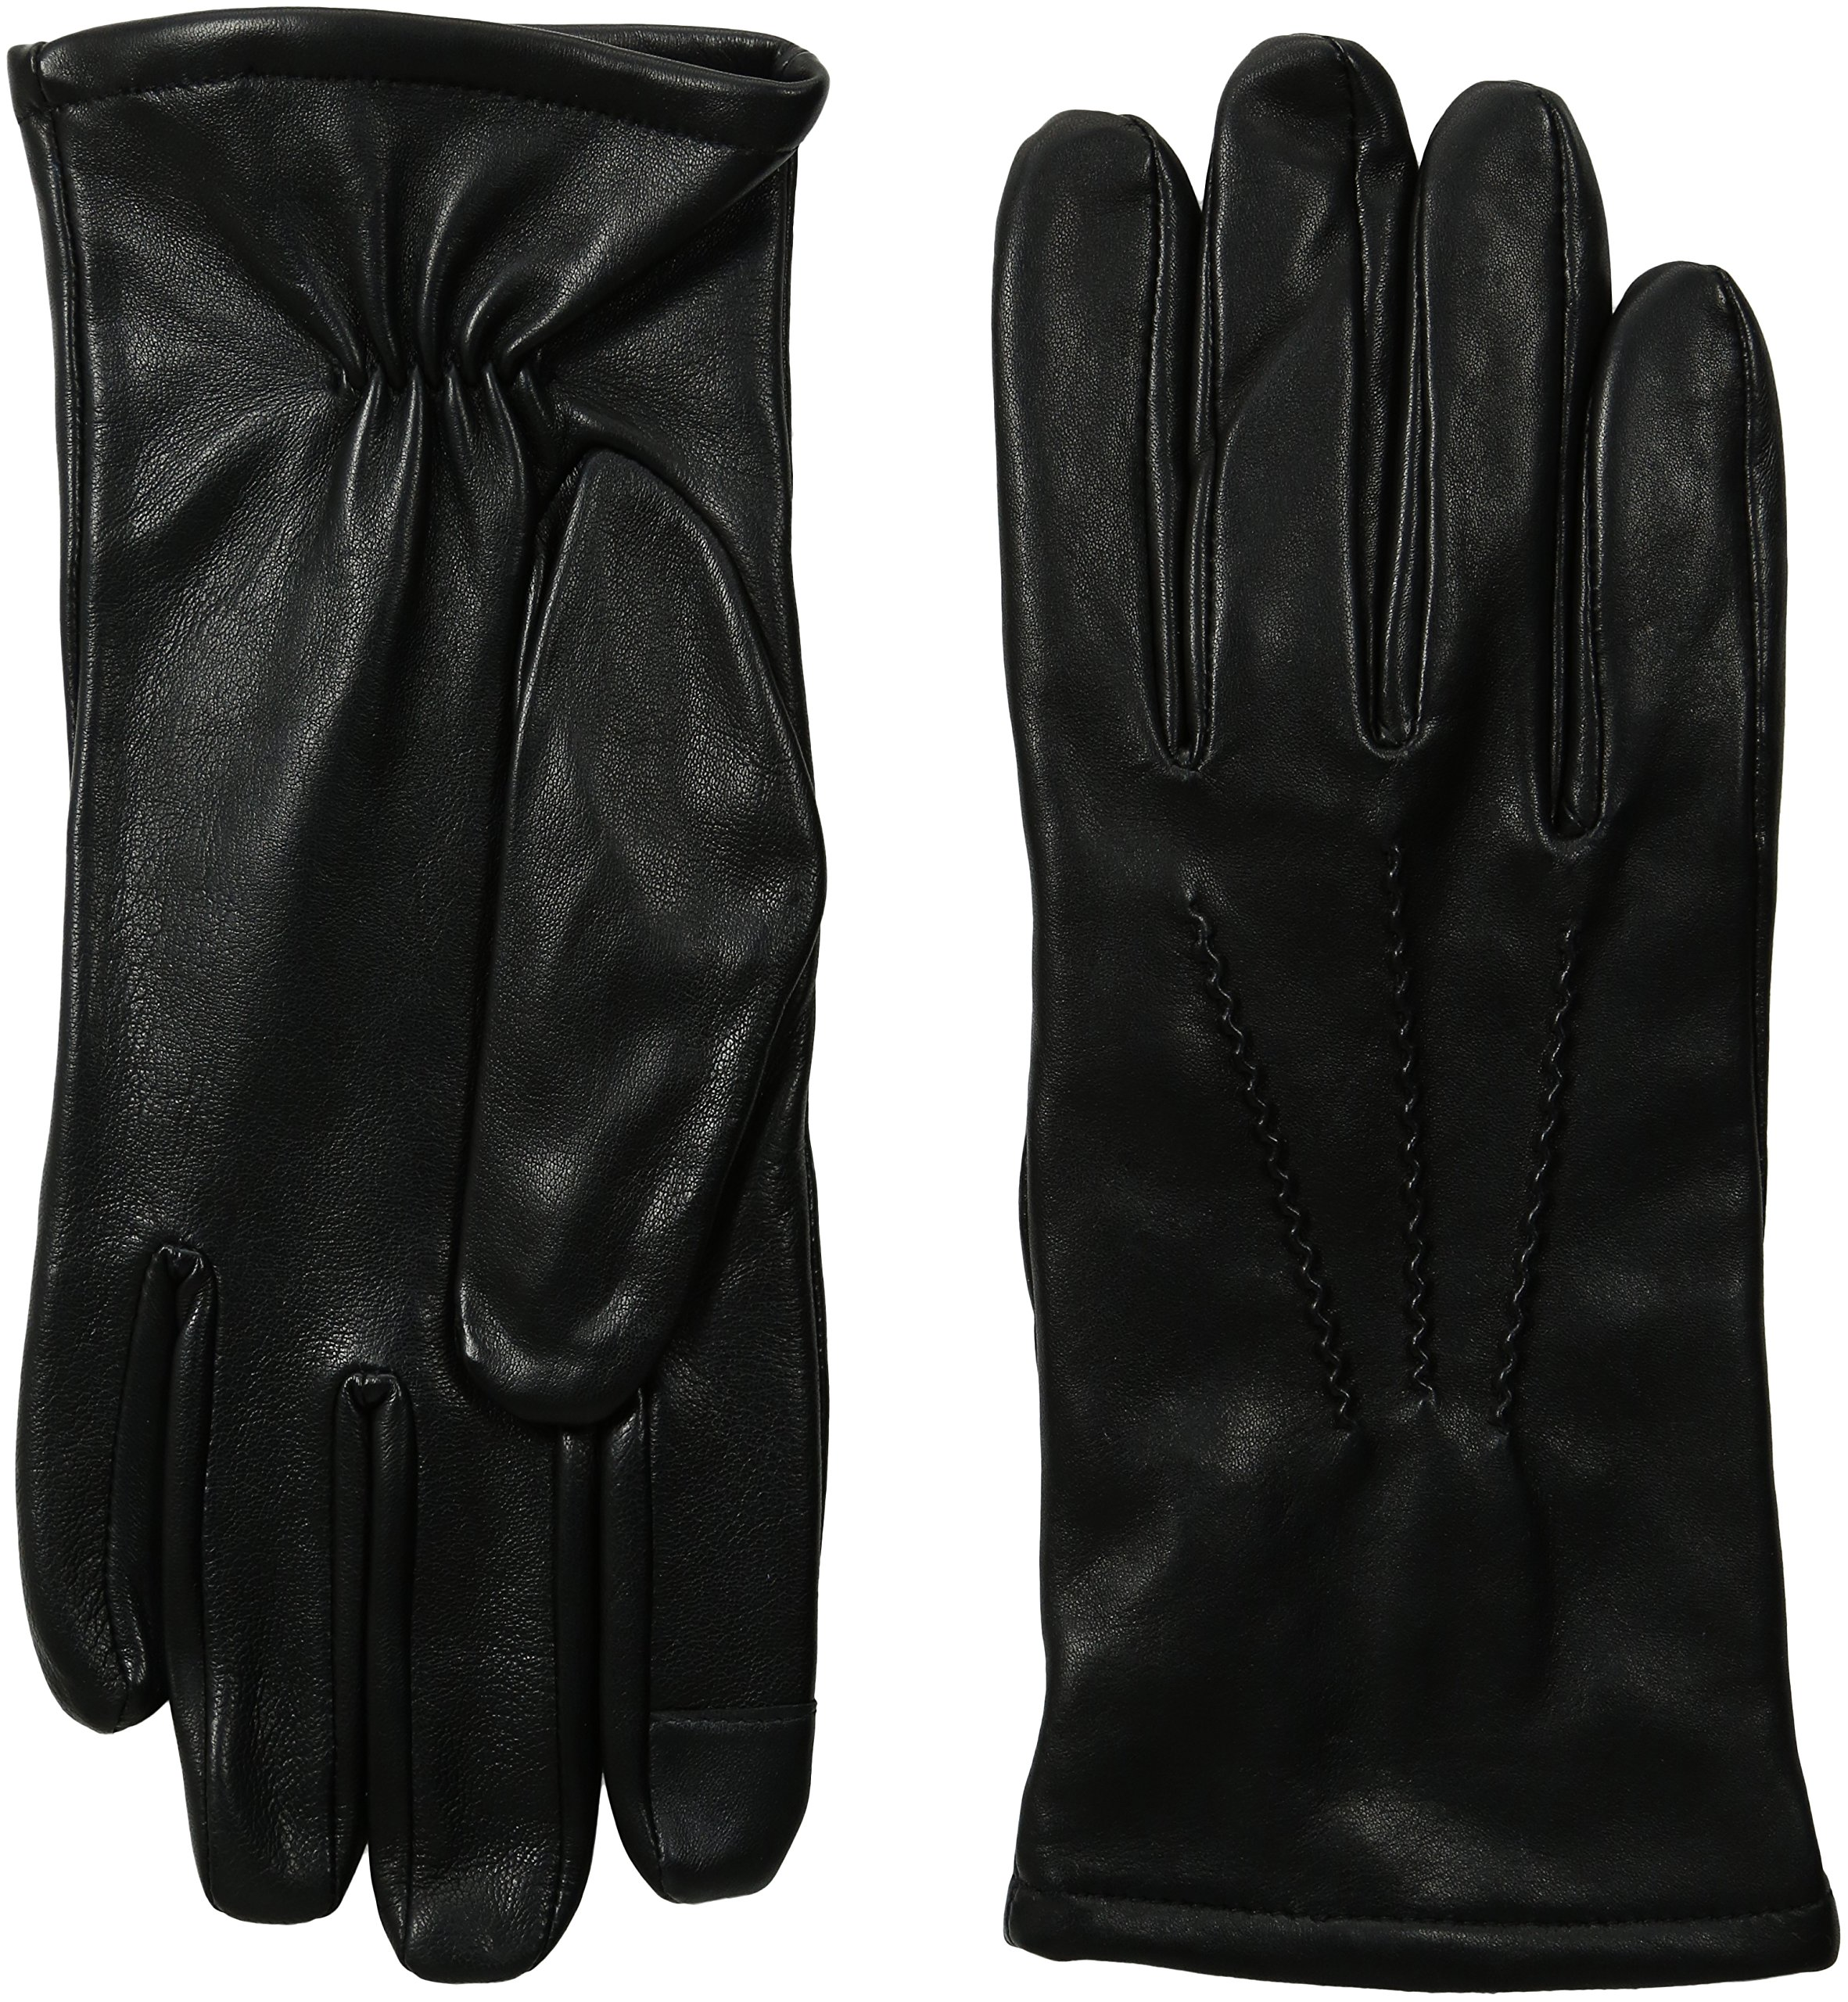 GII Men's Fine Leather Touchscreen Gloves with Cashmere Blend Lining, Black, Large